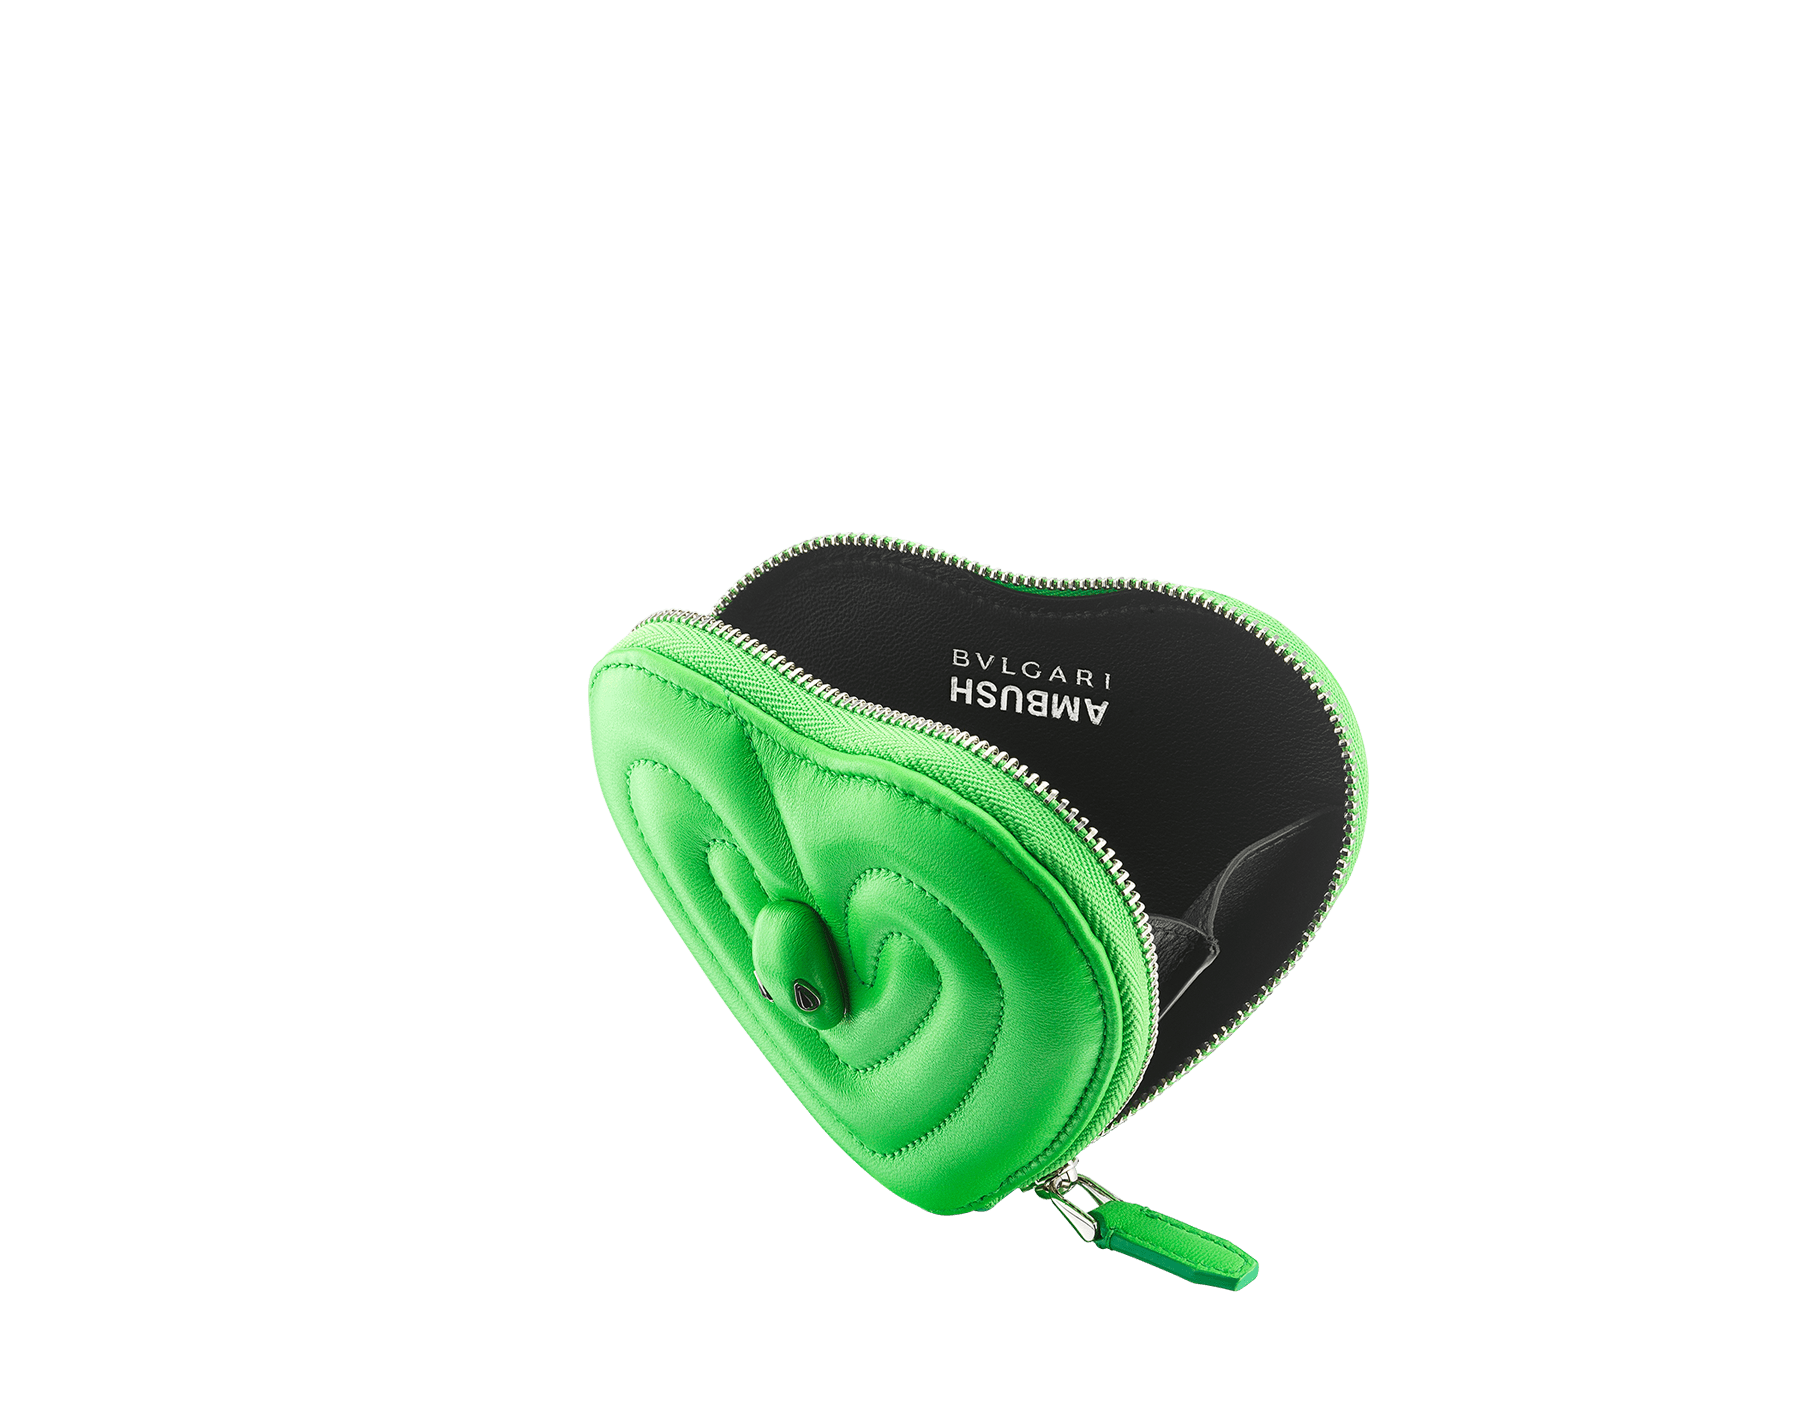 """Ambush x Bvlgari"" coin purse in bright green quilted nappa leather. New Serpenti head in palladium plated brass dressed with bright green nappa leather, finished with black onyx eyes. Limited edition. YA-HEARTCOINC image 2"